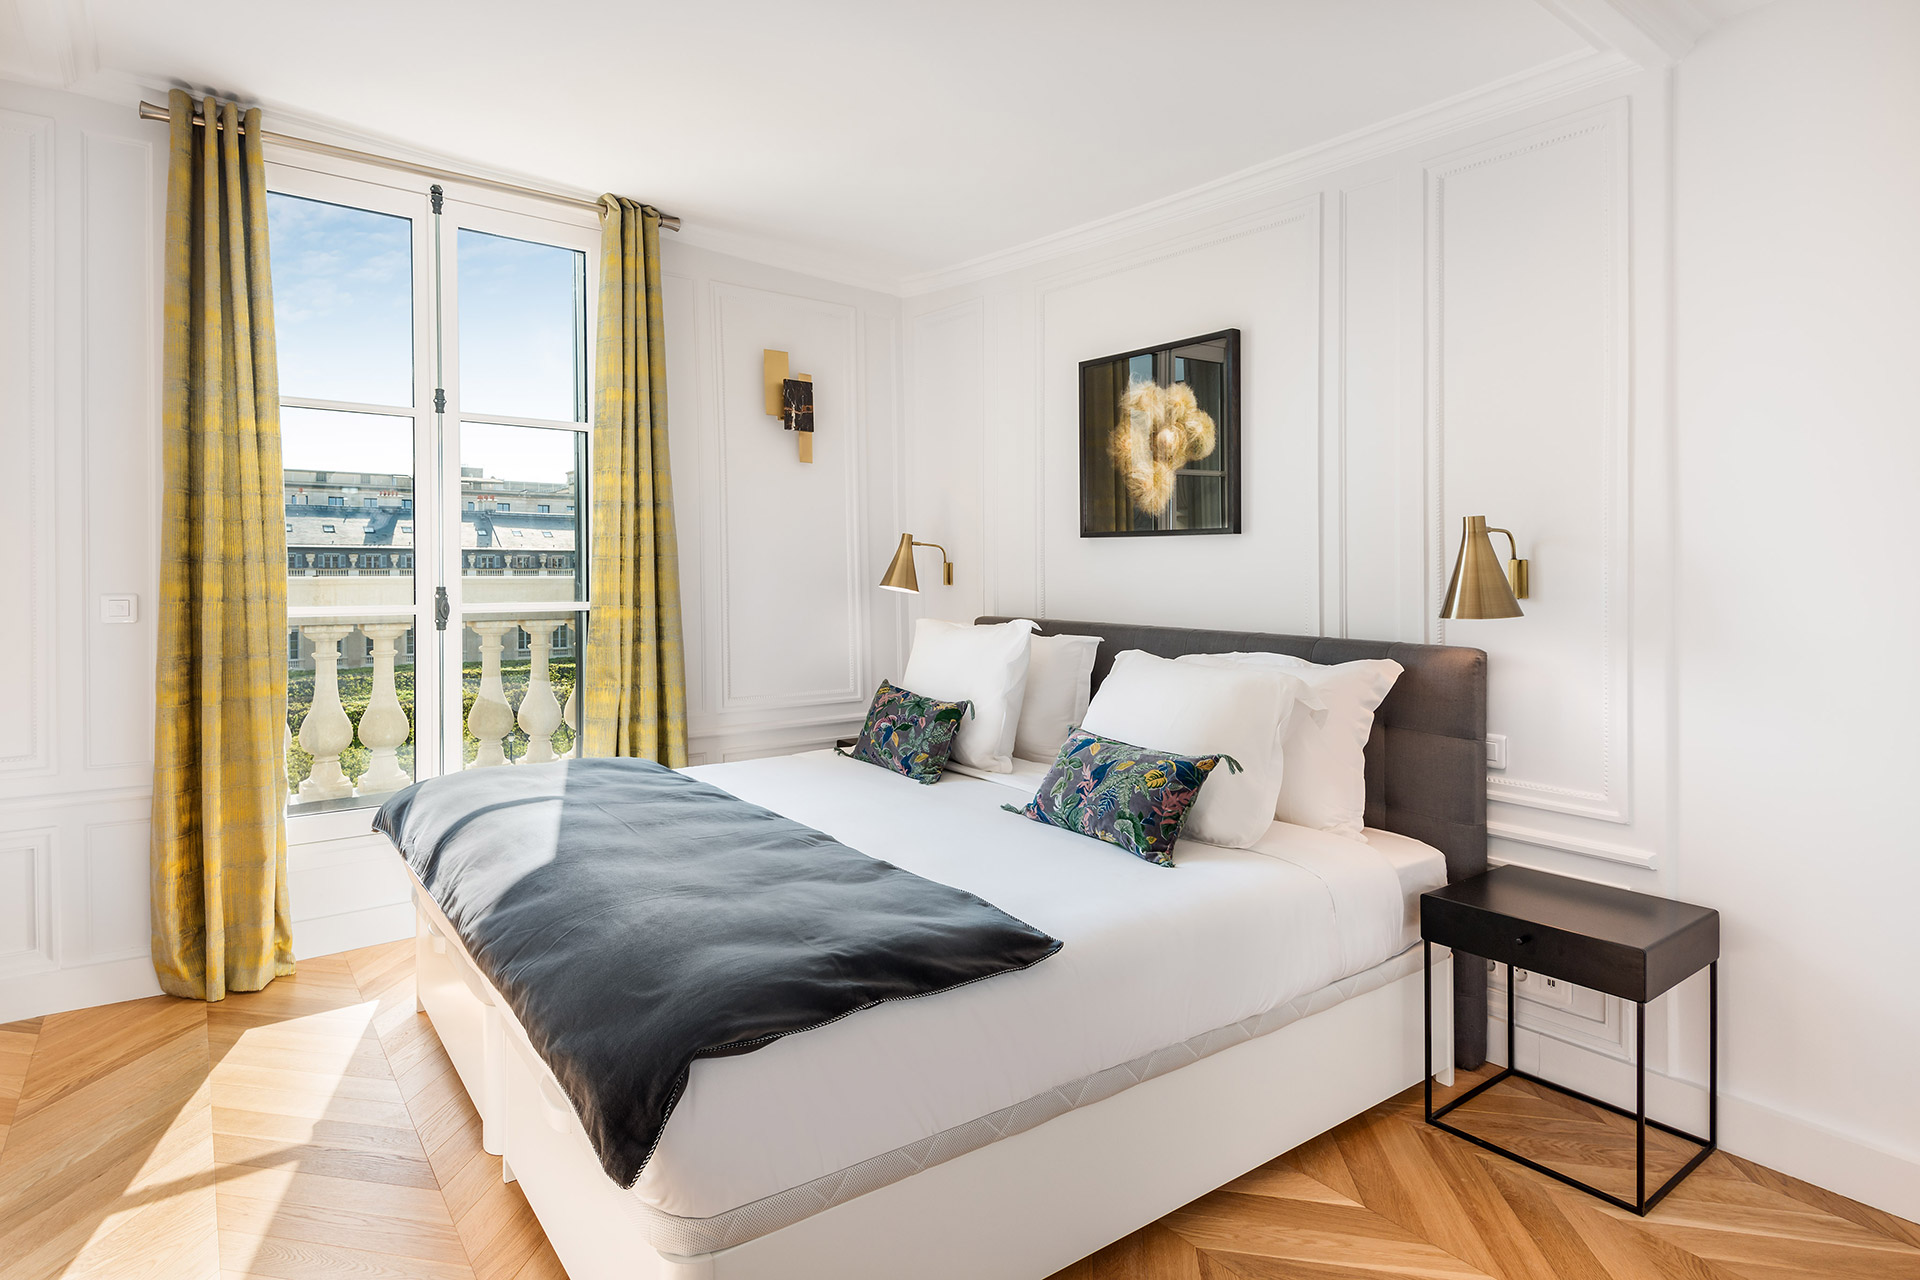 Luxurious bedroom 2 in the Chevalier vacation rental by Paris Perfect